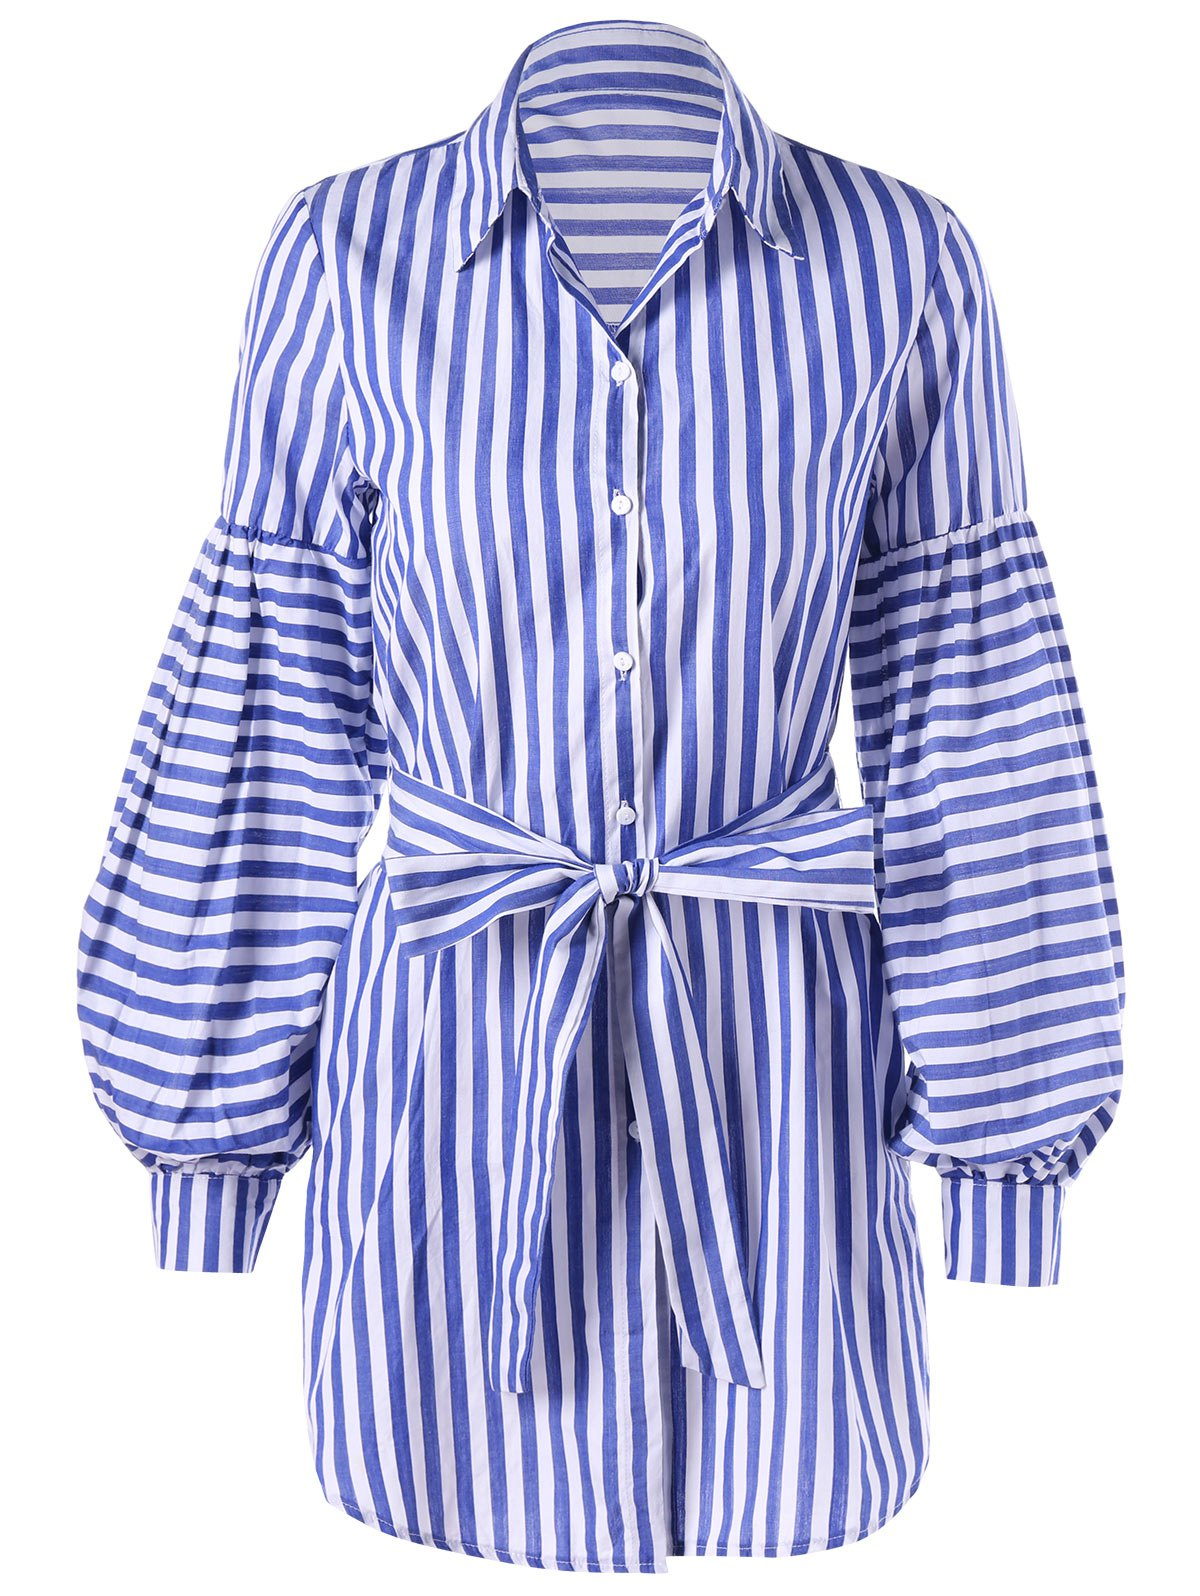 2018 striped tie belt lantern sleeve shirt dress blue for Striped shirt with tie